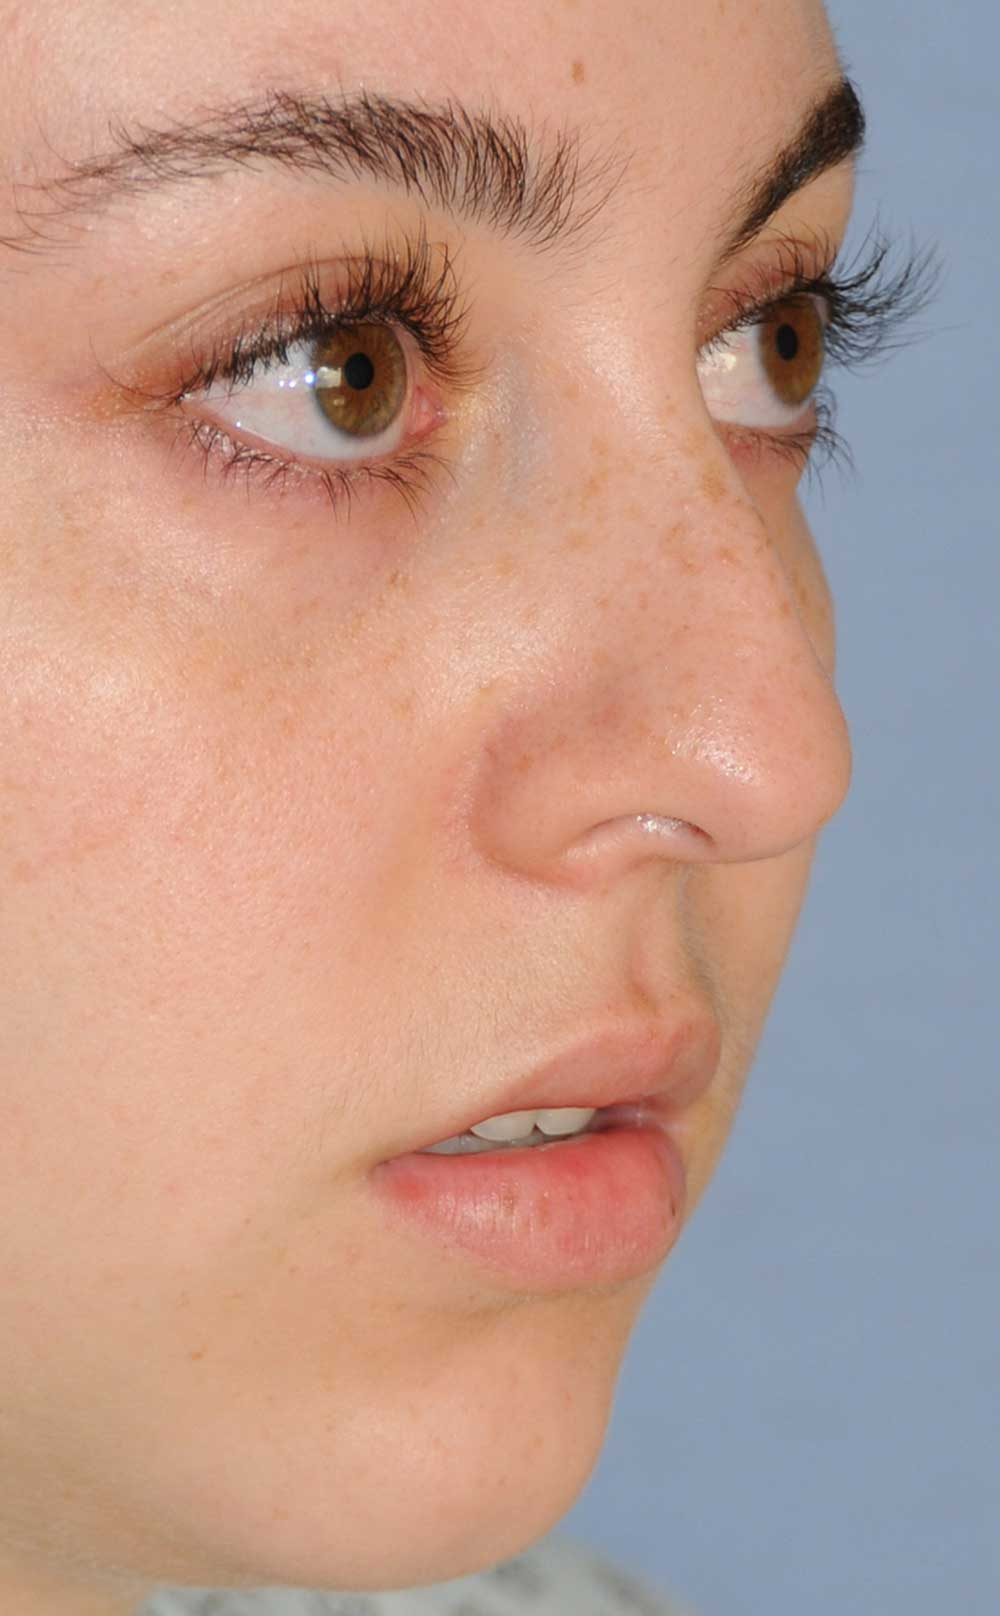 Rhinoplasty for a Bulbous Nasal Tip, Prominent Nasal Bridge, Short Nose / Columella and Lip Fat Transfer for Small Thin Lateral Upper Outer Lips Before Right Oblique View